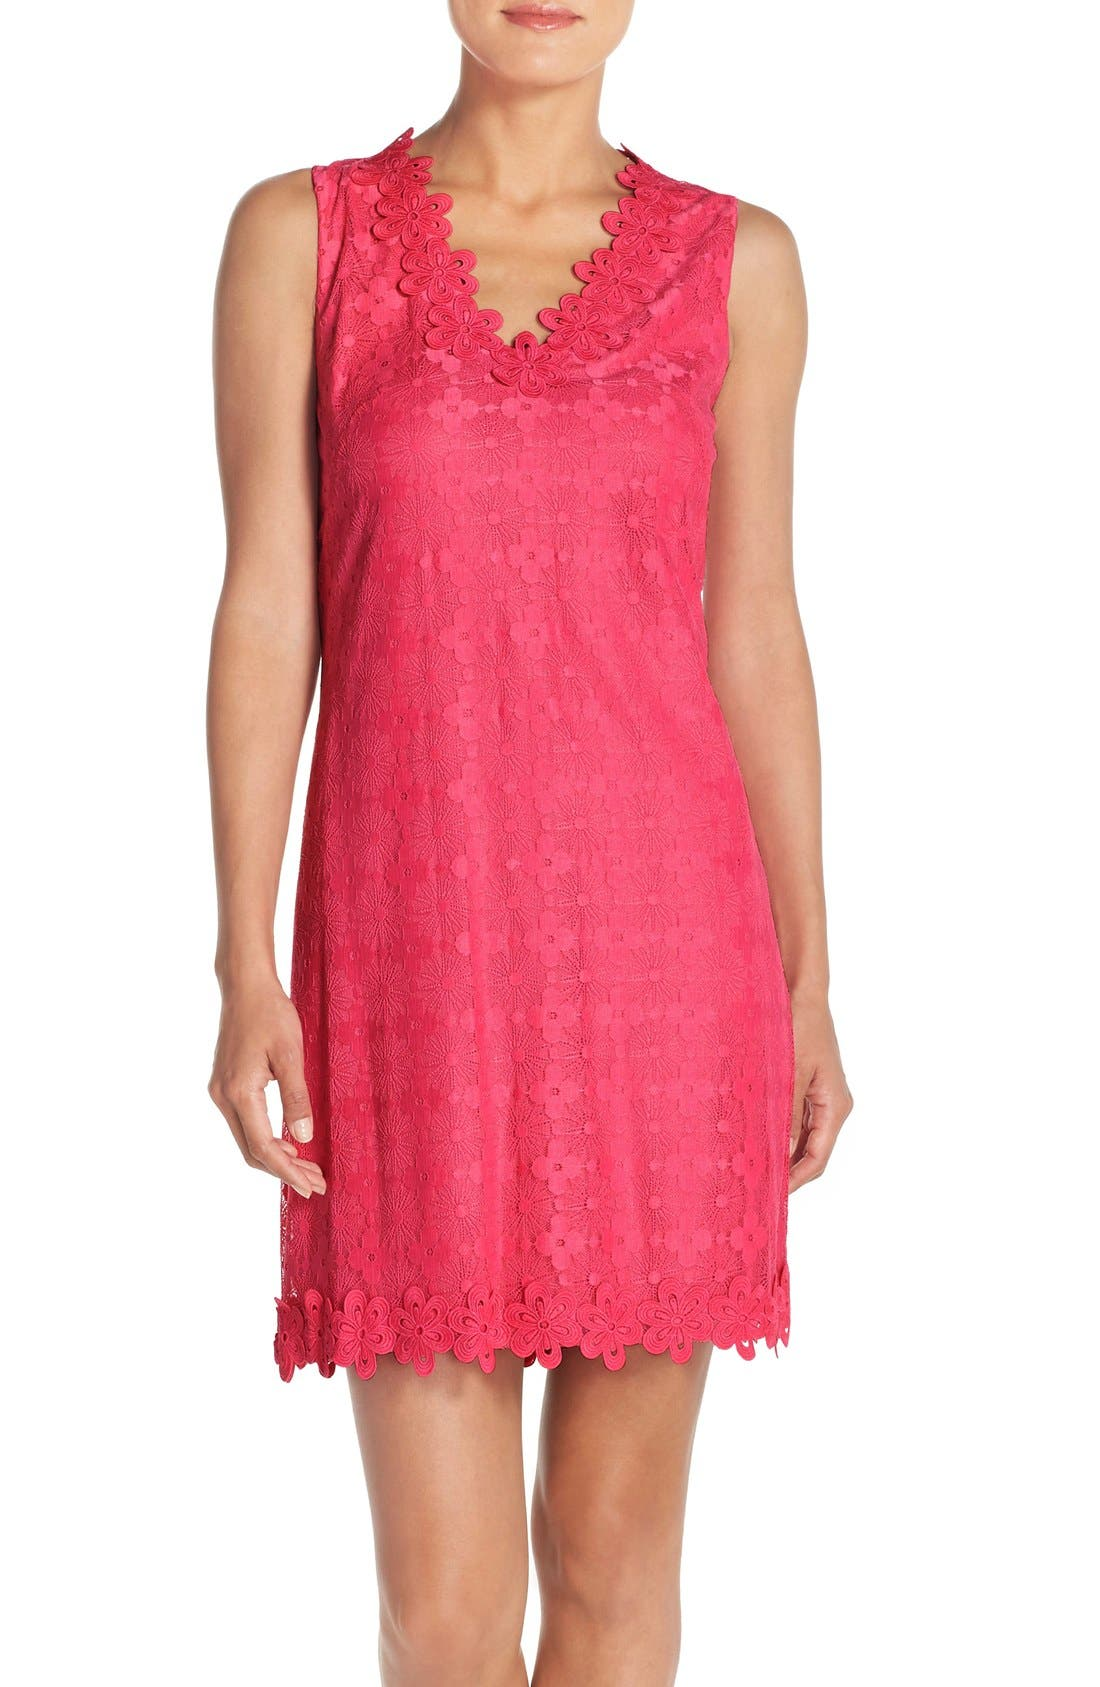 Alternate Image 1 Selected - London Times Floral Lace Shift Dress